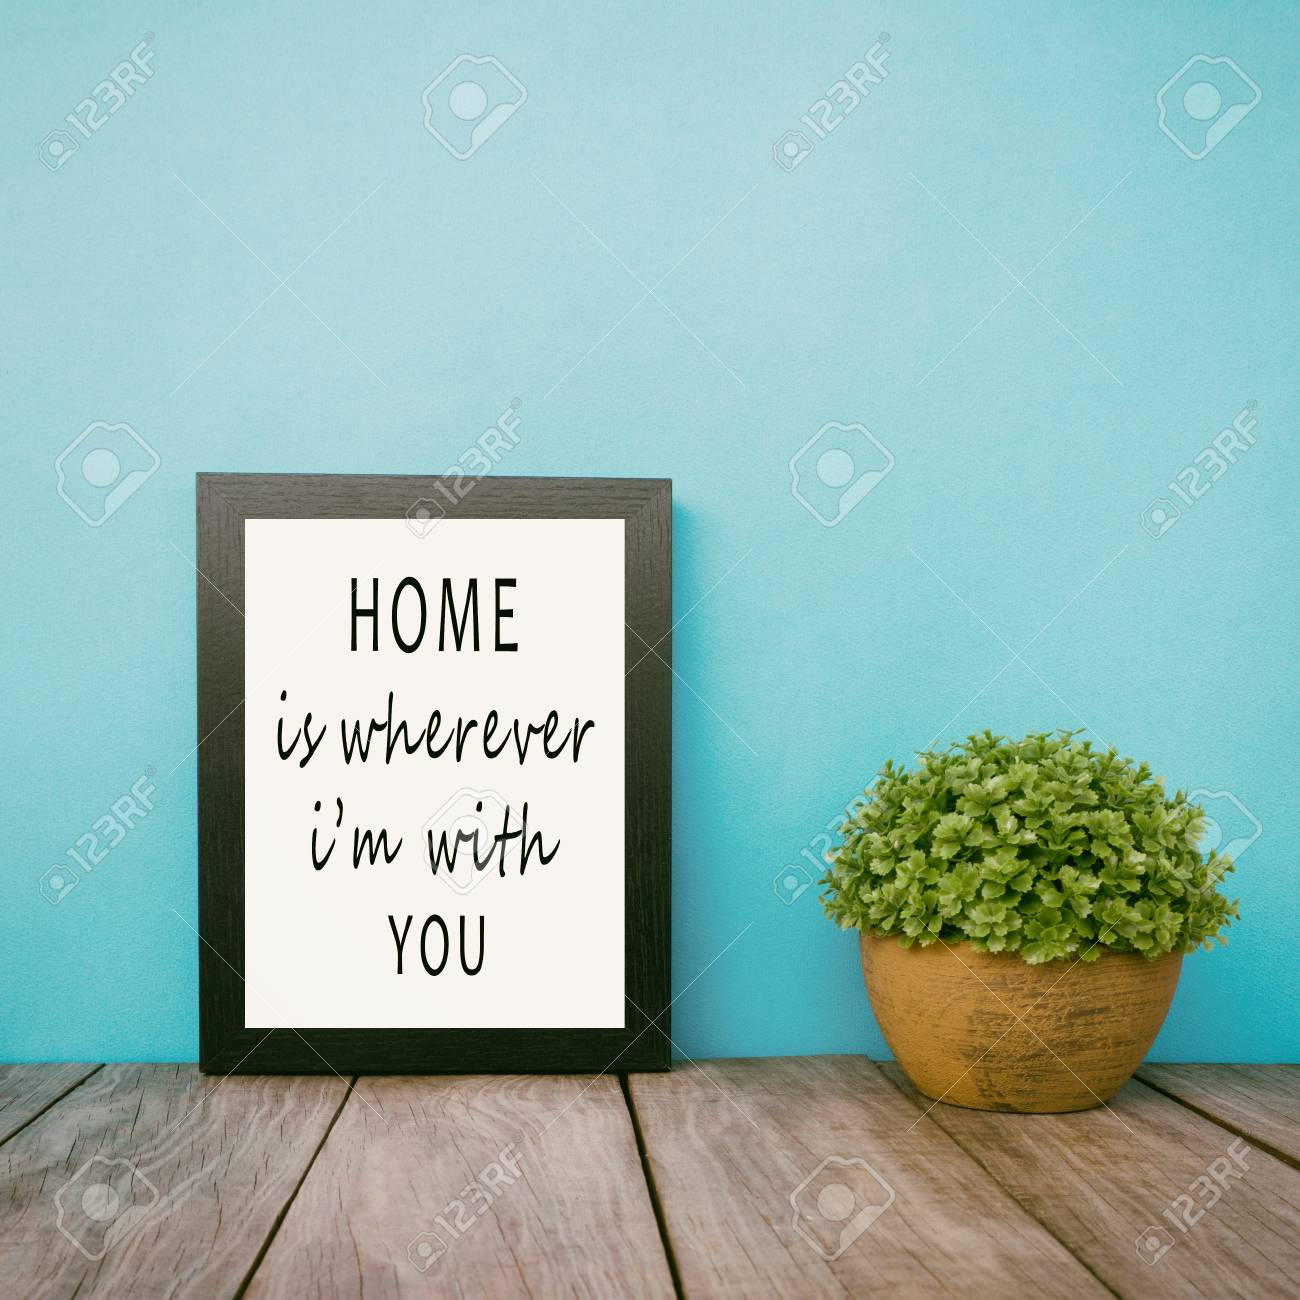 Motivational and inspirational life quotes - Home is wherever..